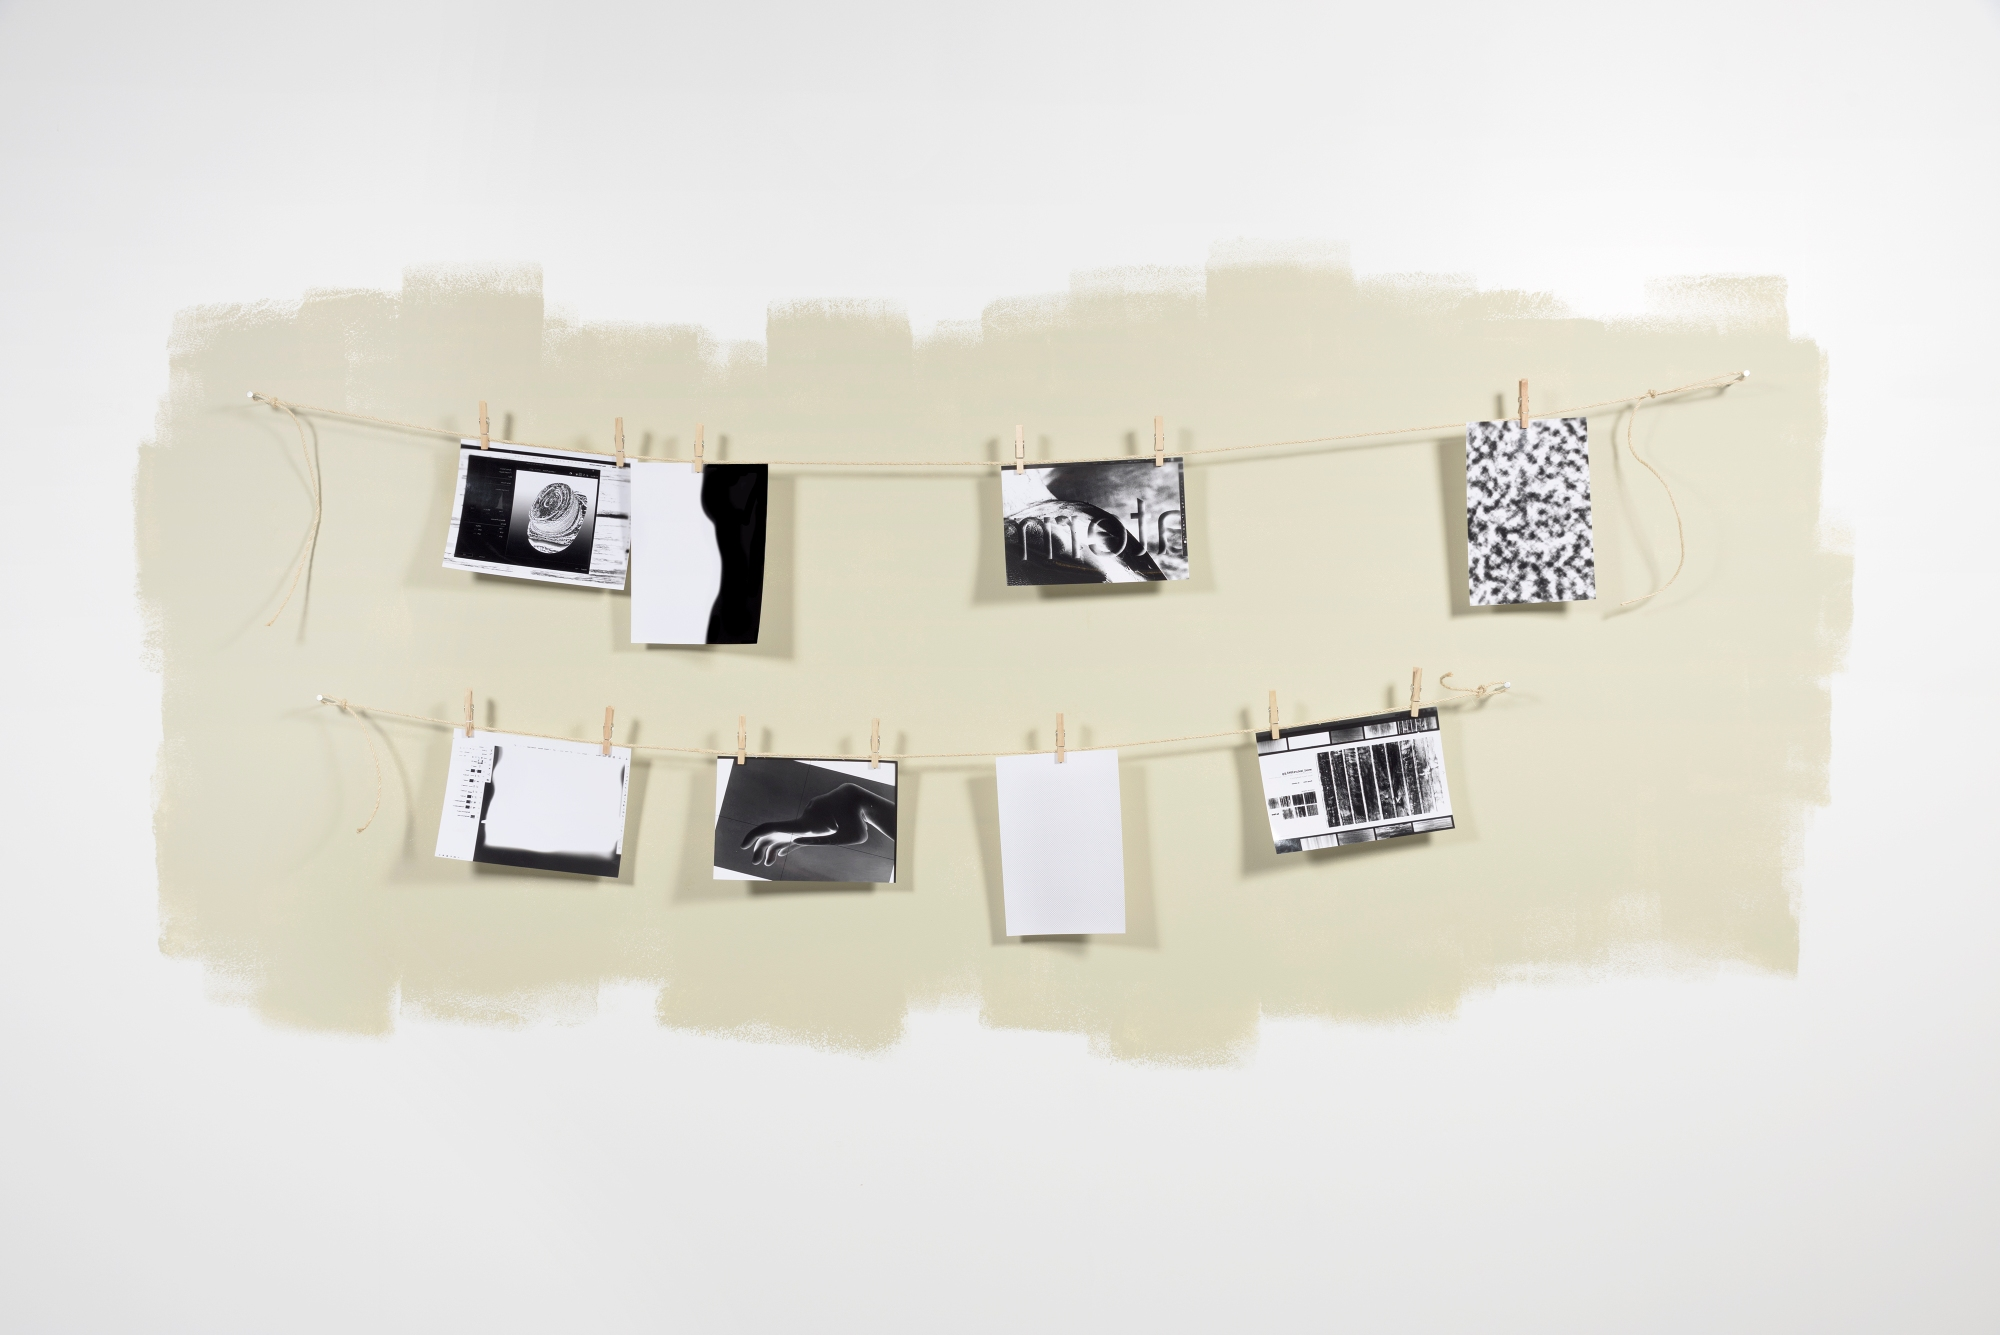 Screen Dumps, 2015, Photographic paper exposed with LCD light from retina displays